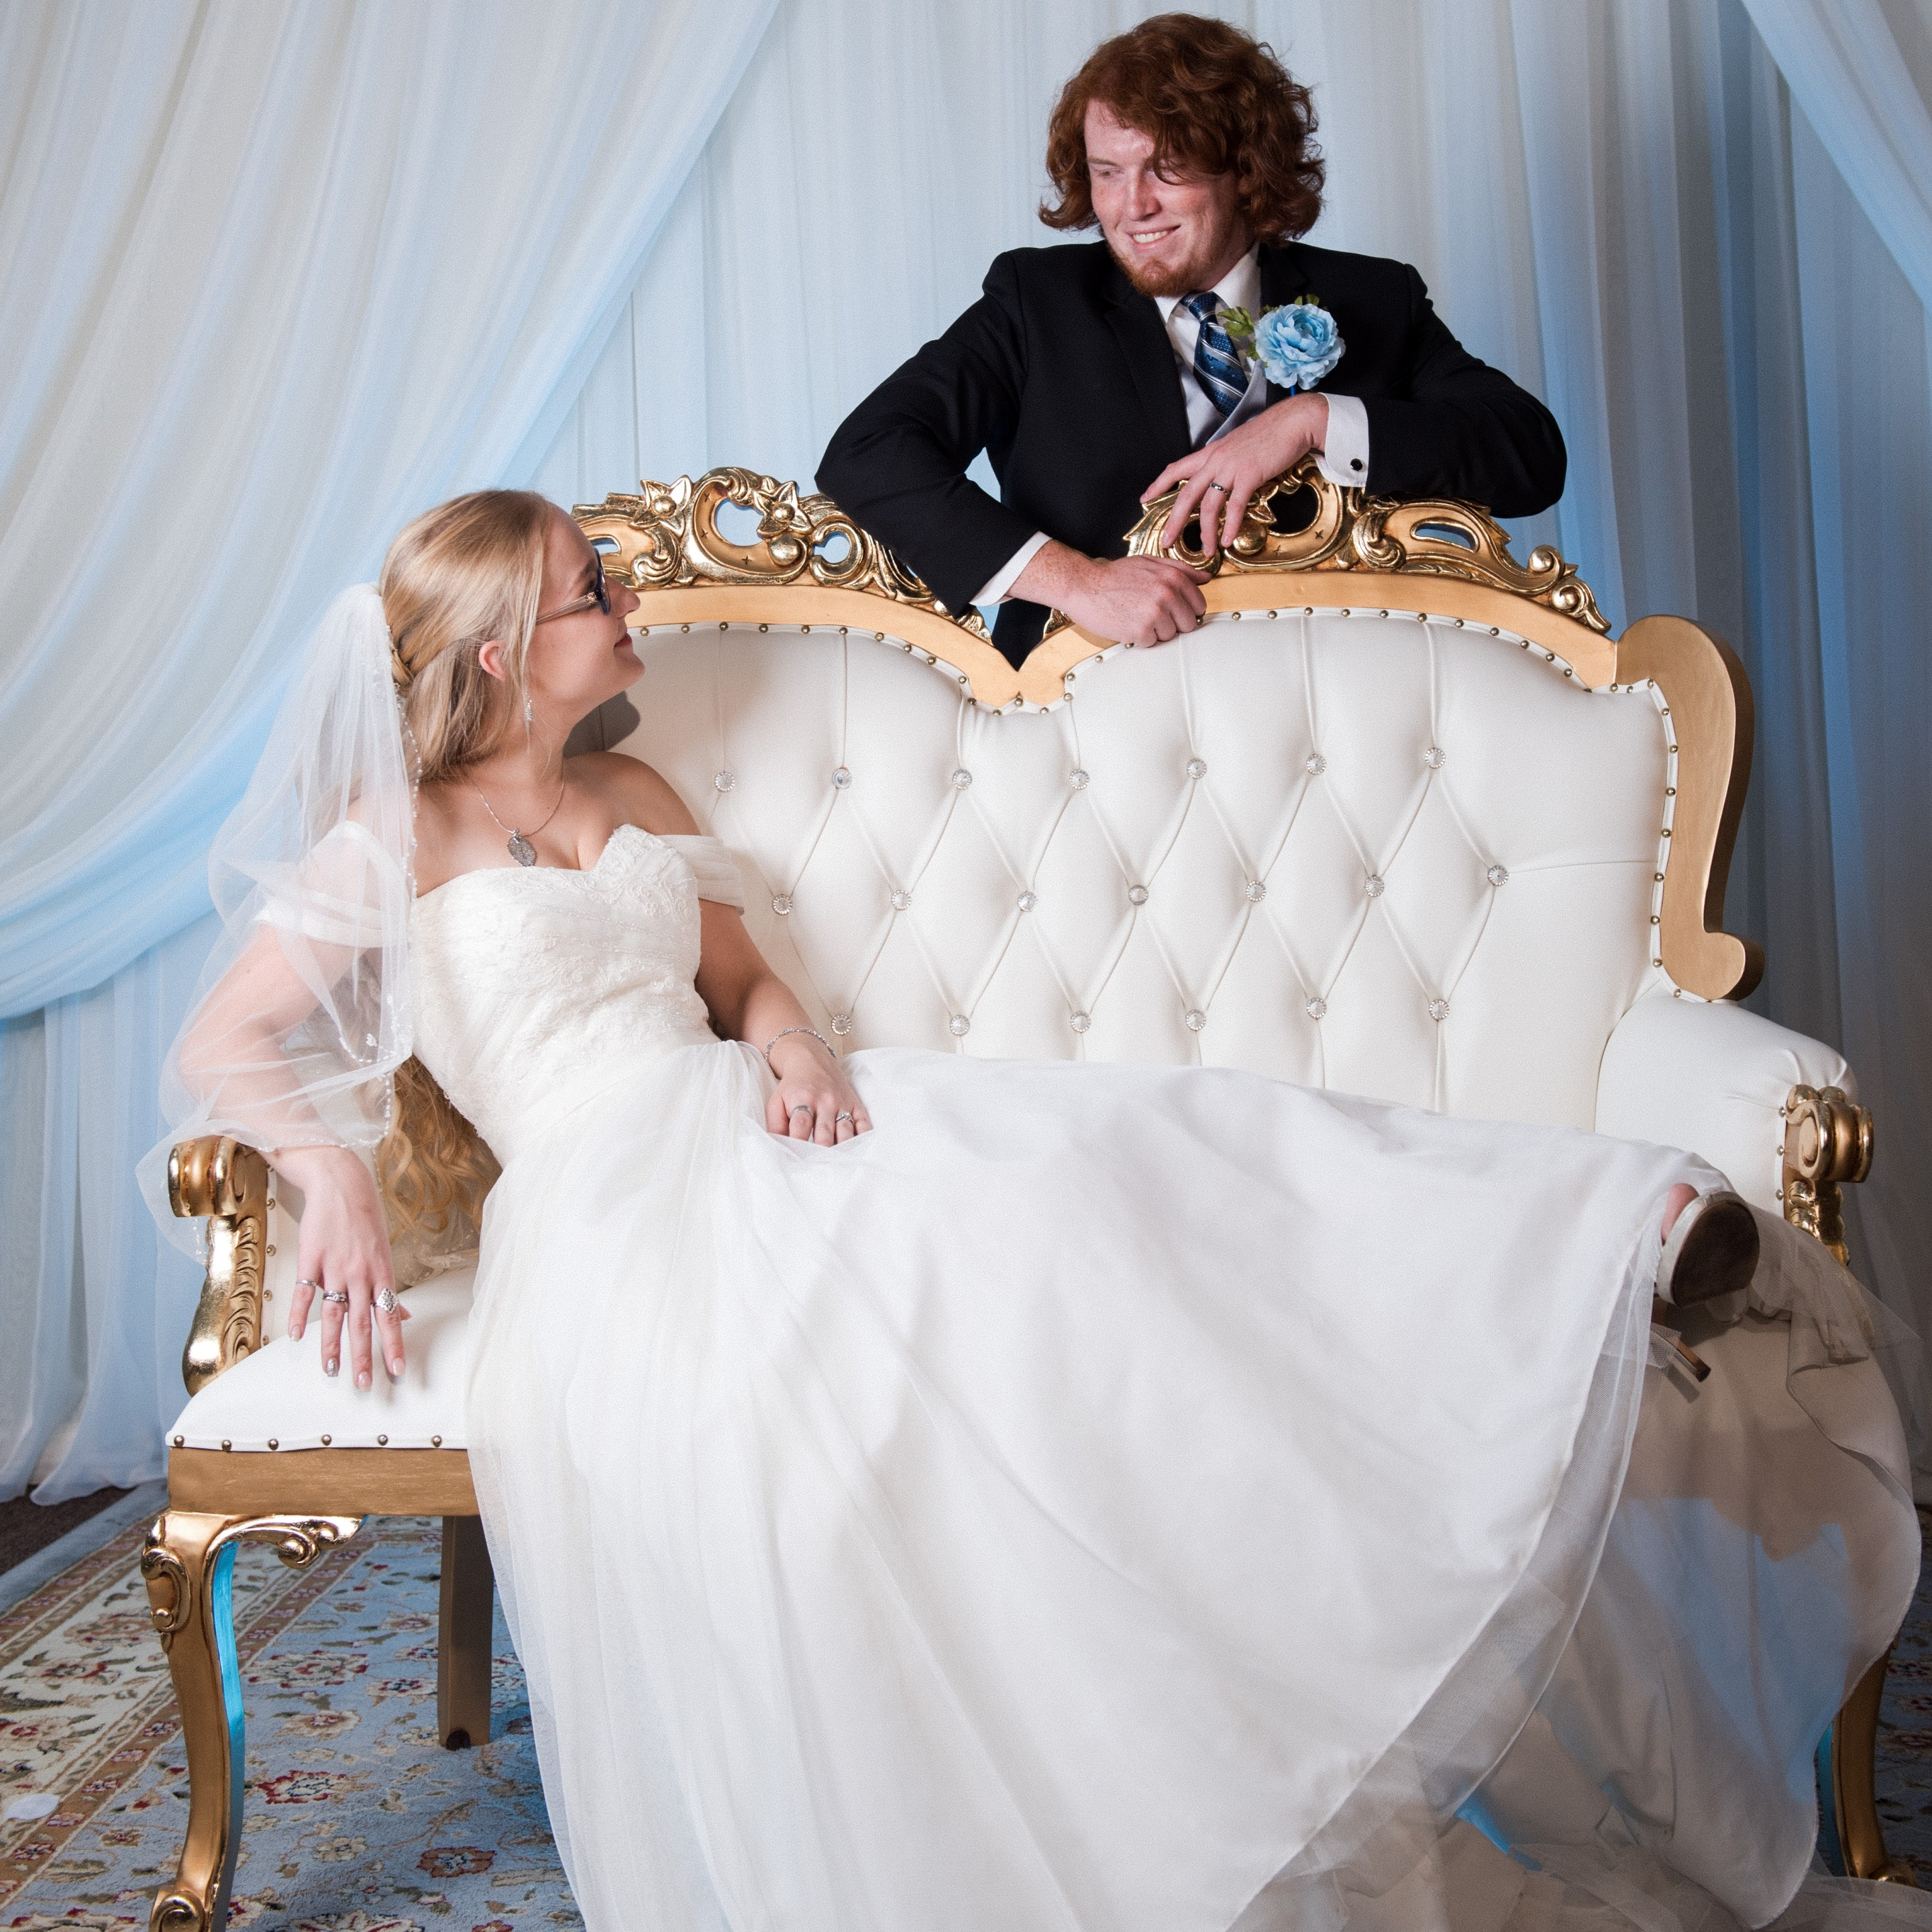 Villa Tuscana Reception Hall event showing bride and groom sitting on decorative couch